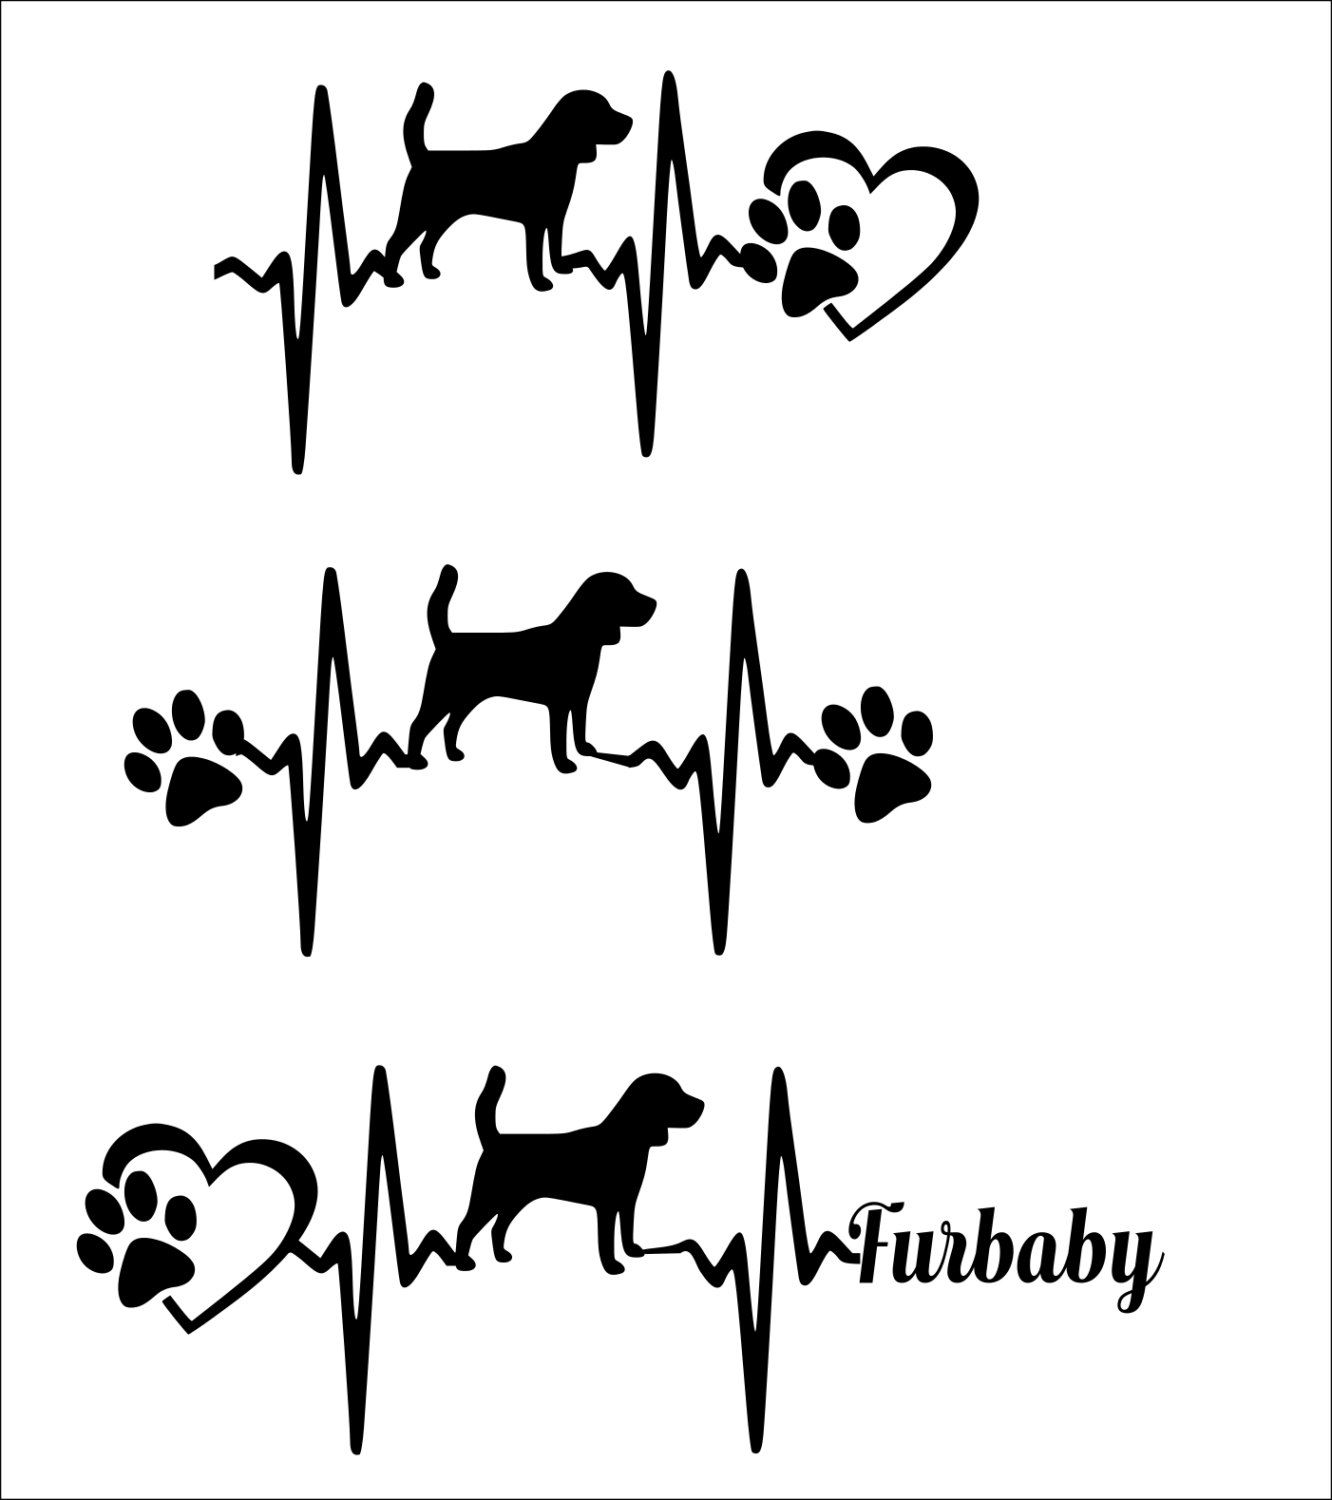 Svg Cut File Cute Beagle Heartbeat Paw With Heart